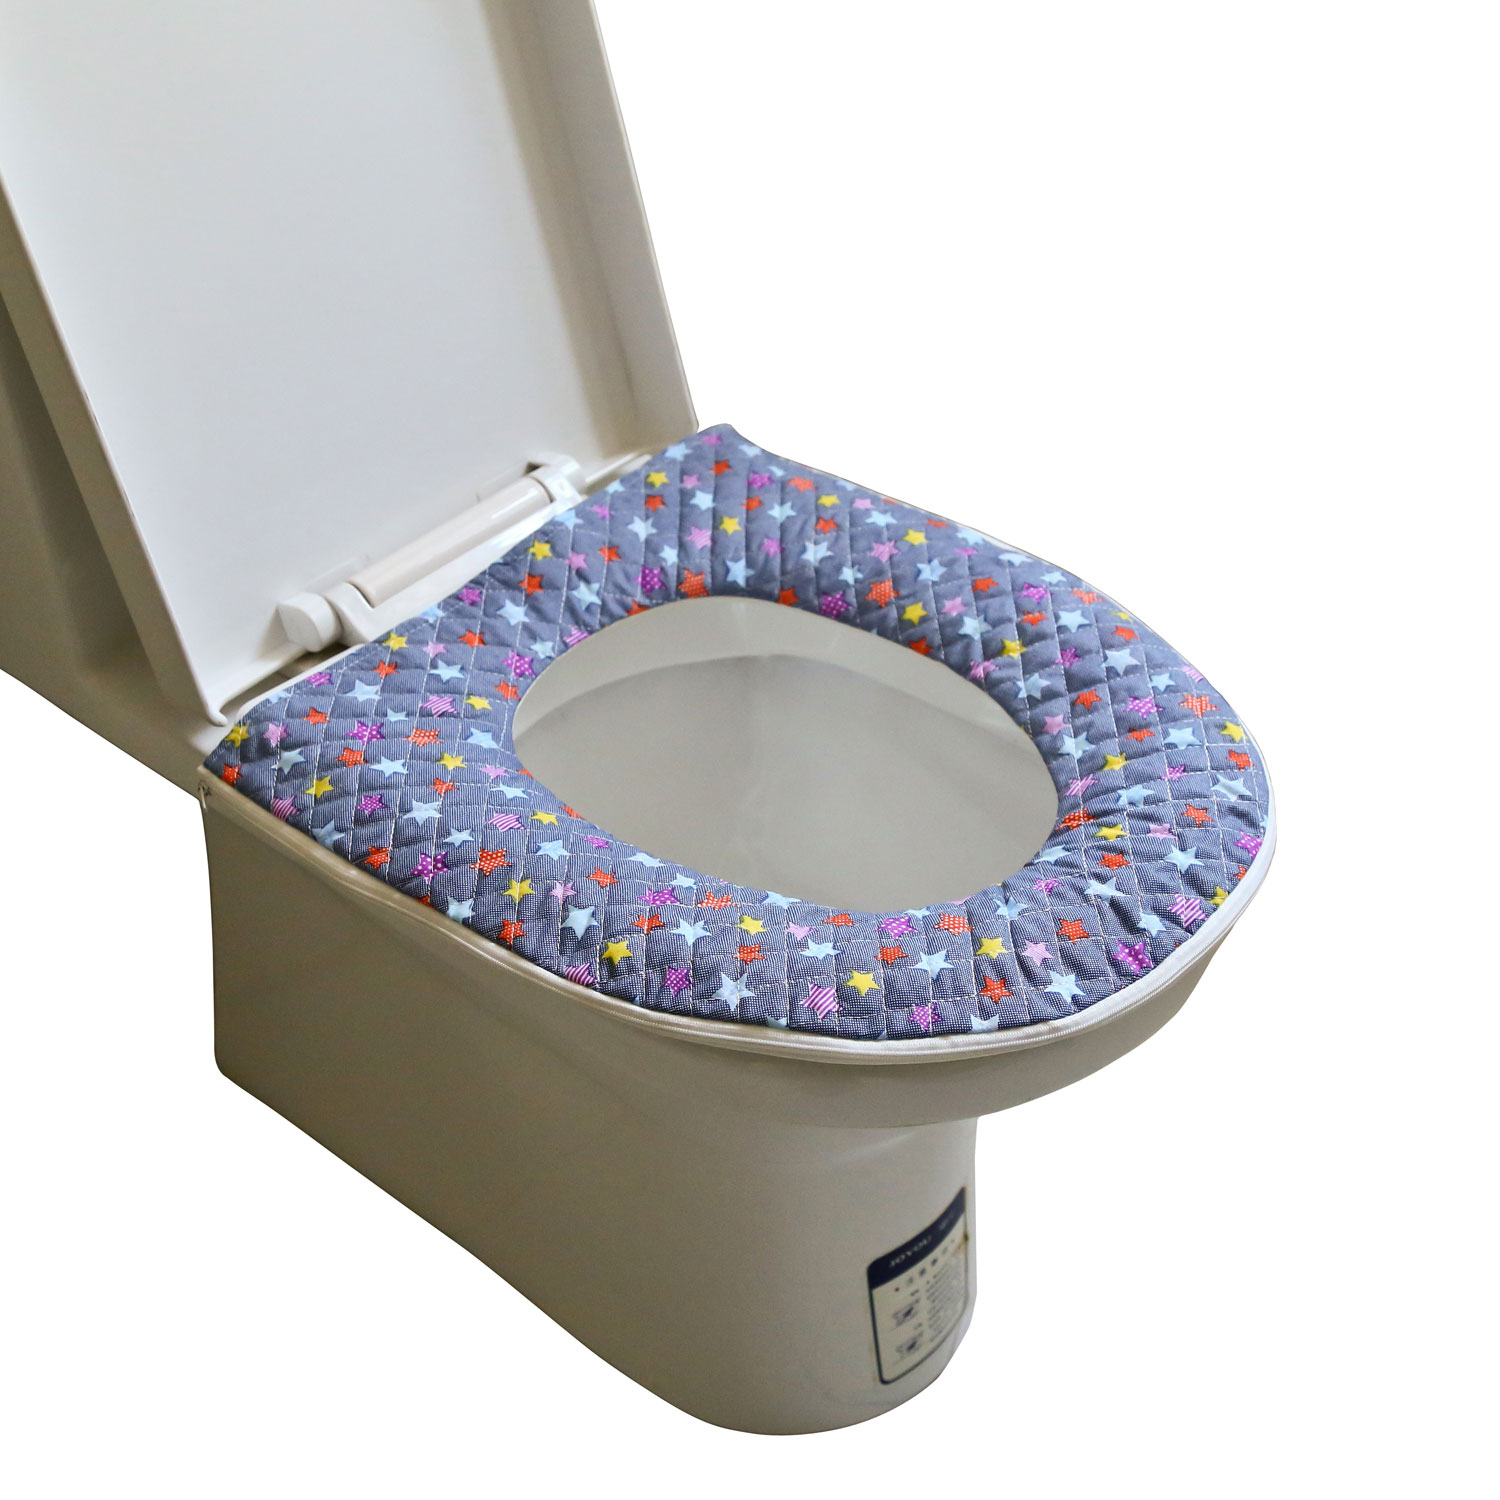 Xin instrument shipping thick mat toilet potty toilet cover toilet seat cover toilet seat potty ring chain new